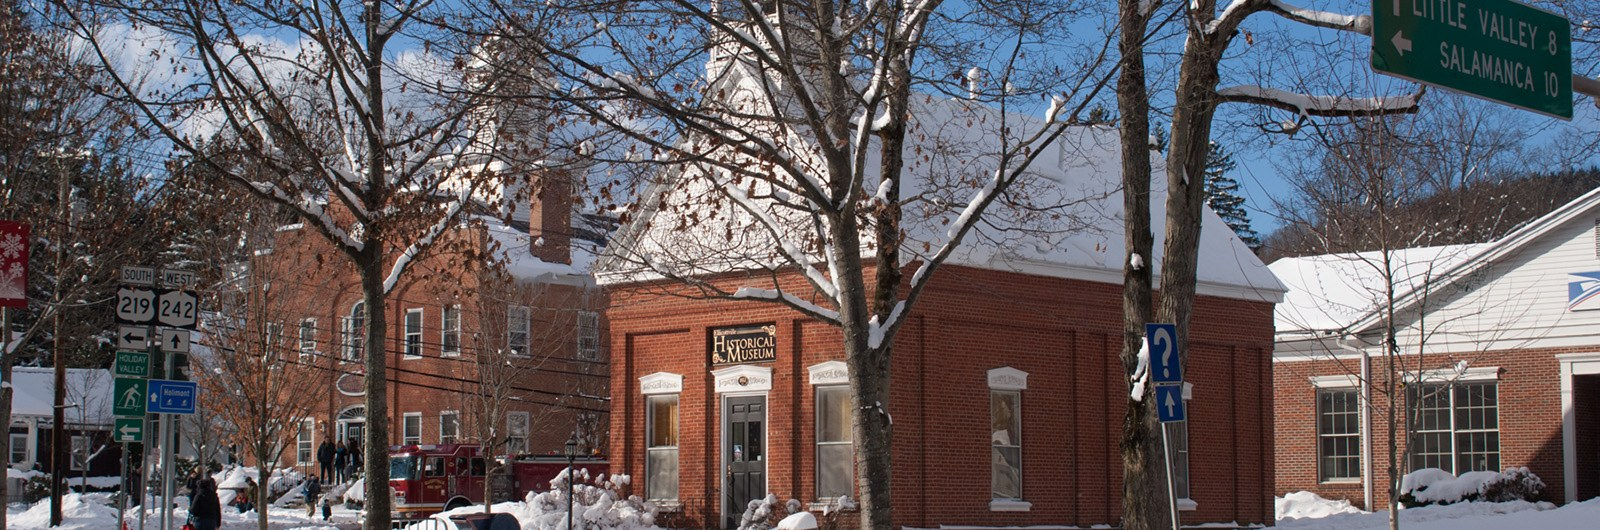 Ellicottville Historical Museum and Town Hall